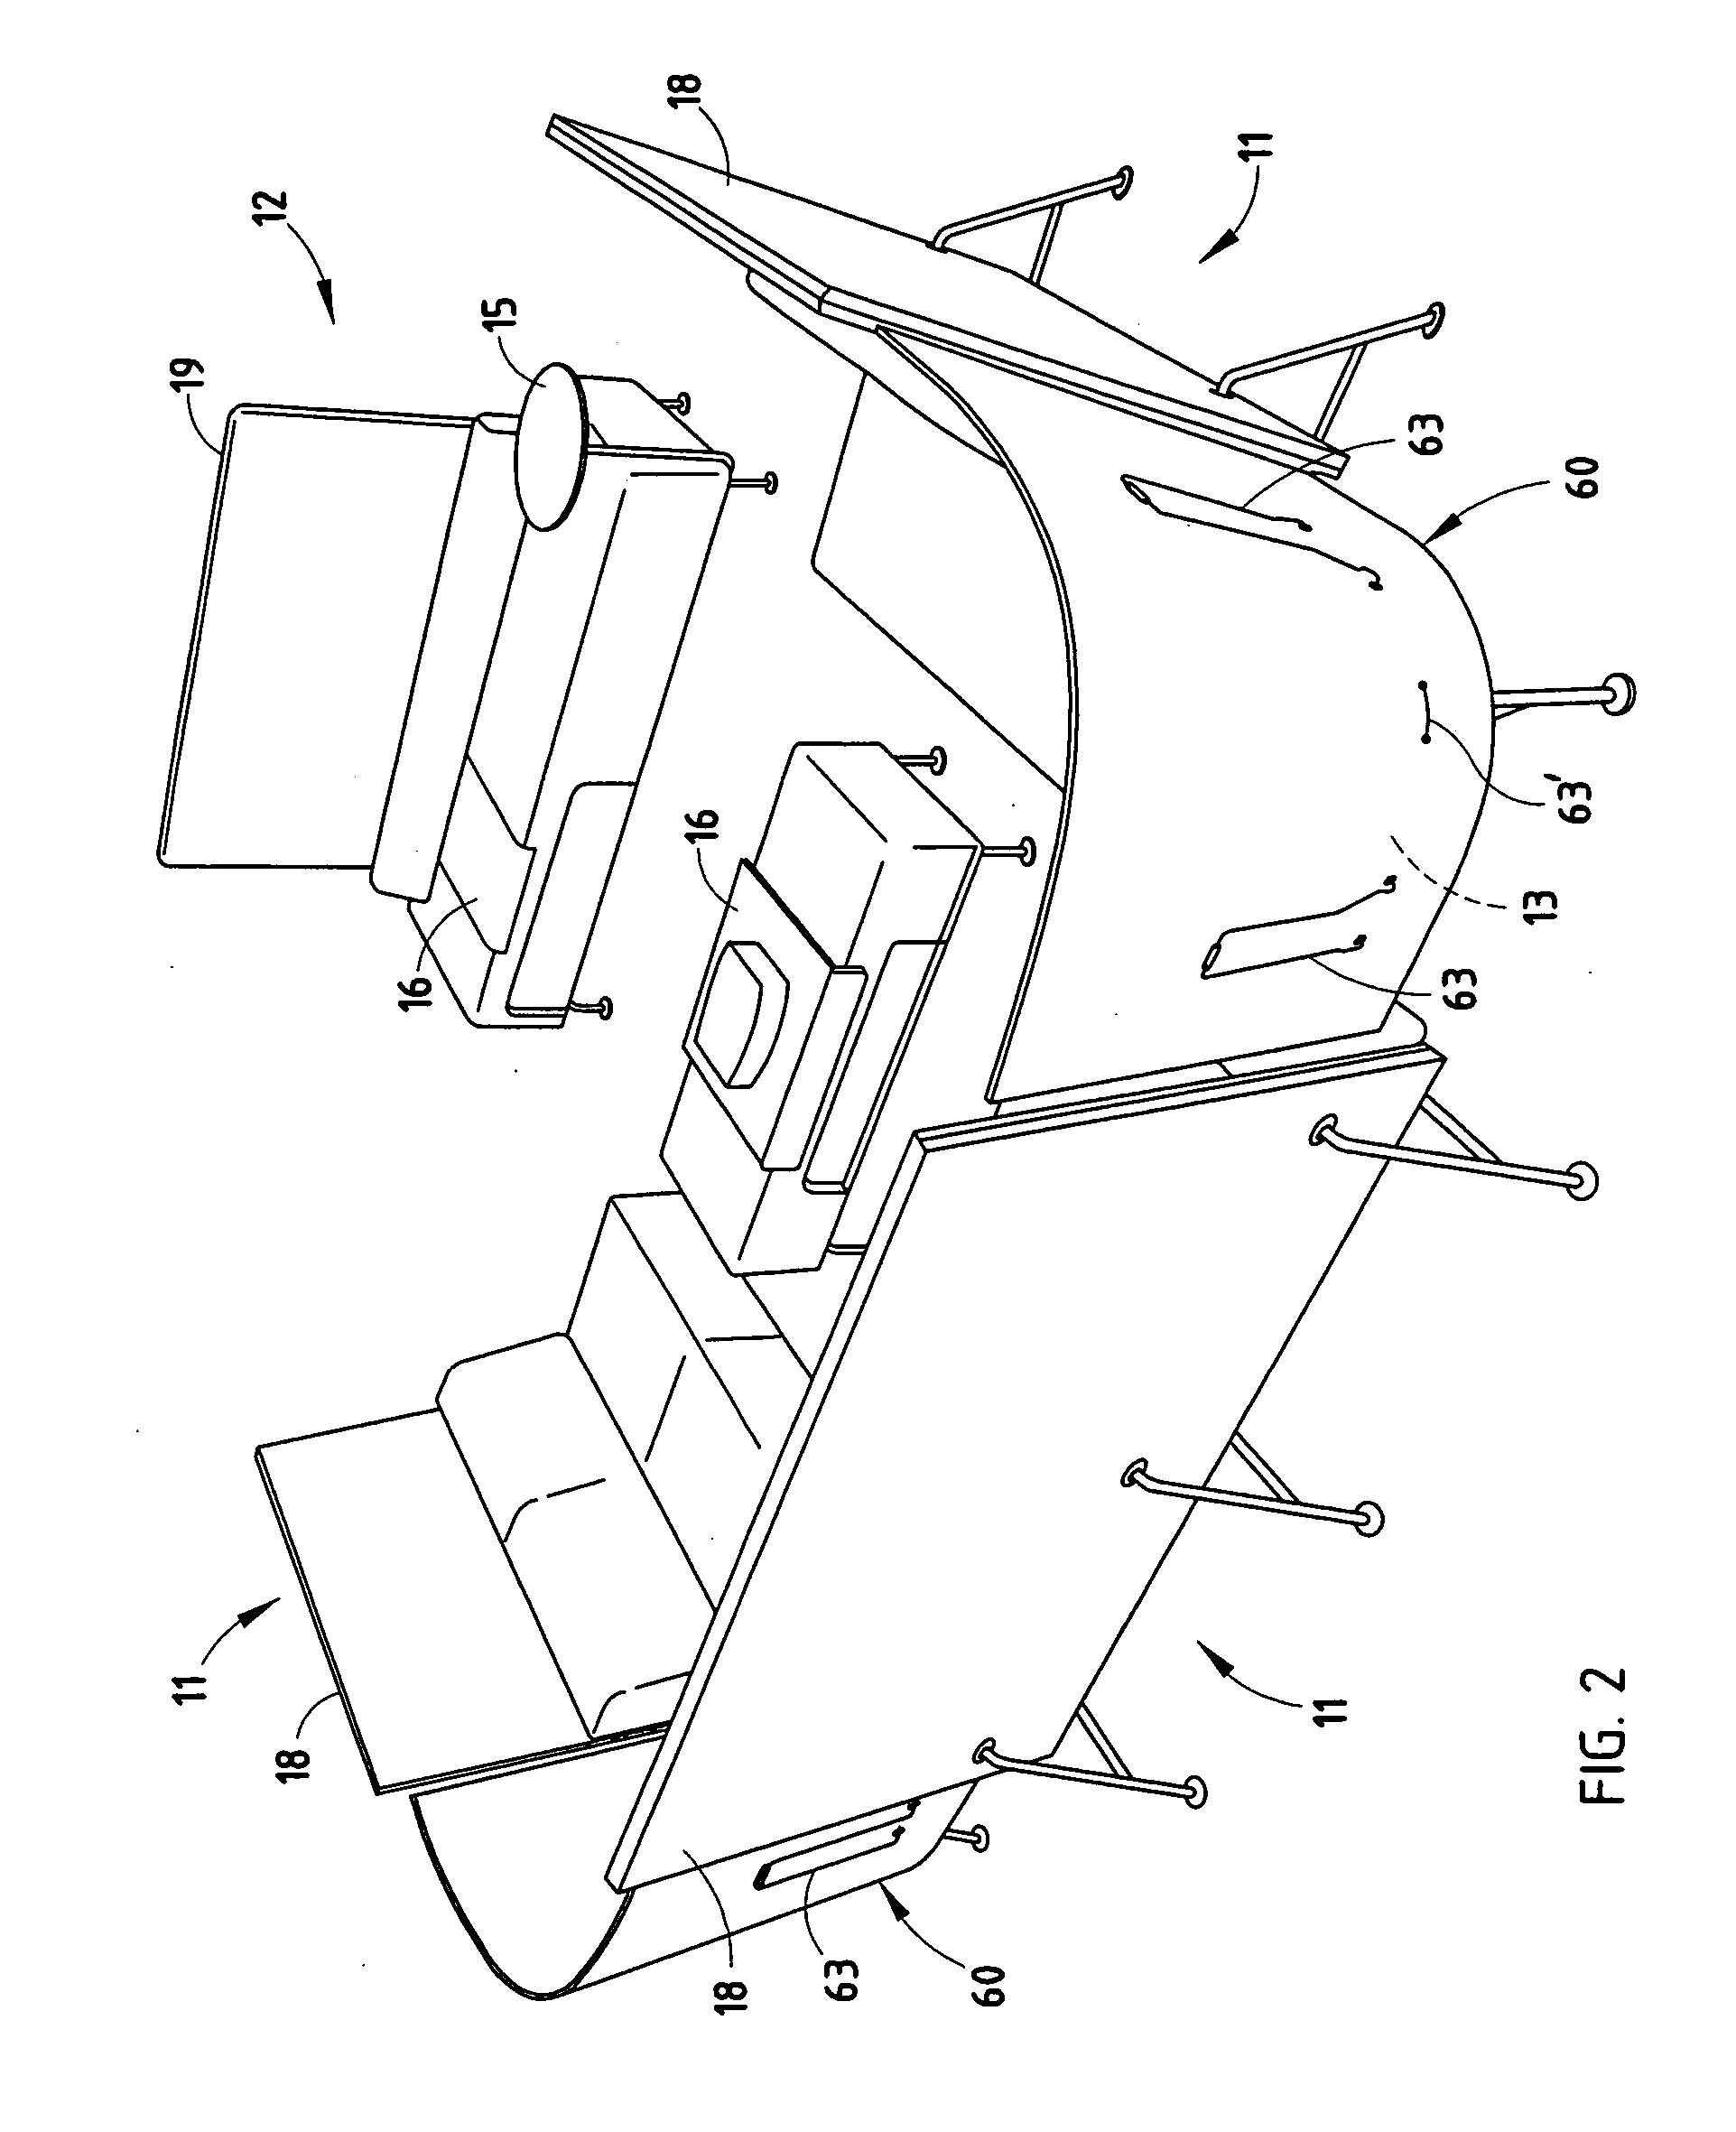 Patent Us20050126446 Table Mounted Screen Apparatus Google Patents Steelcase Wiring Schematic Drawing